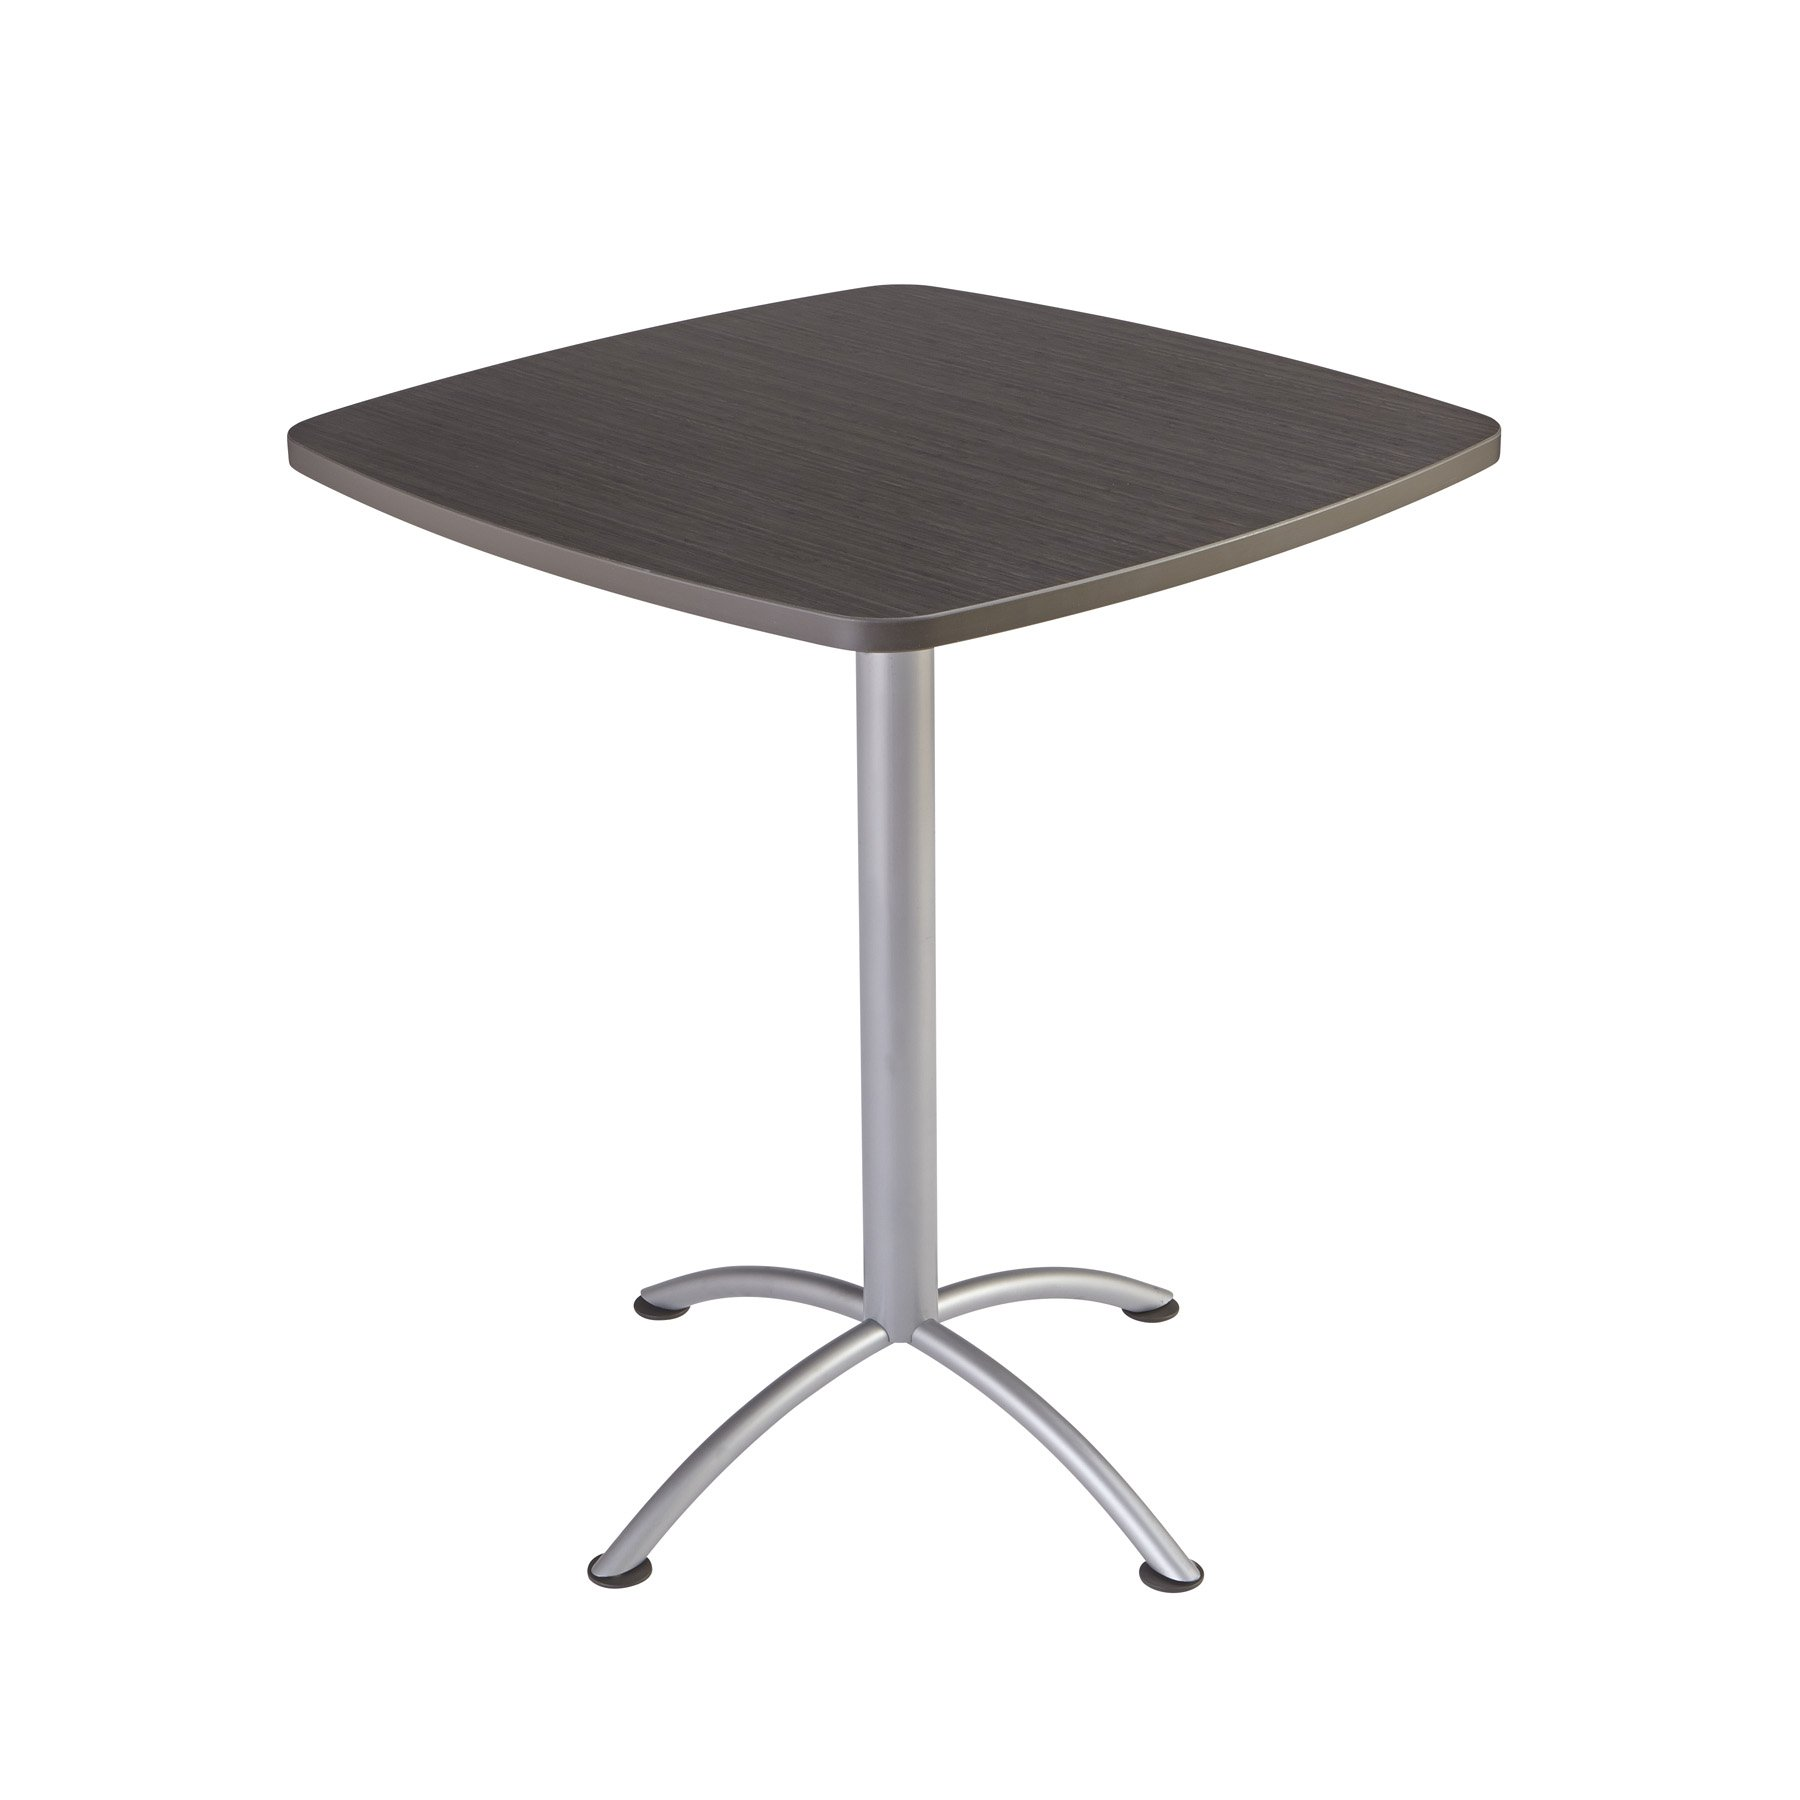 Iceberg 69754 iLand Meeting/Conferencing Table, Edgeband, 36'' Square, 42'' Height, Gray Walnut, Silver Base